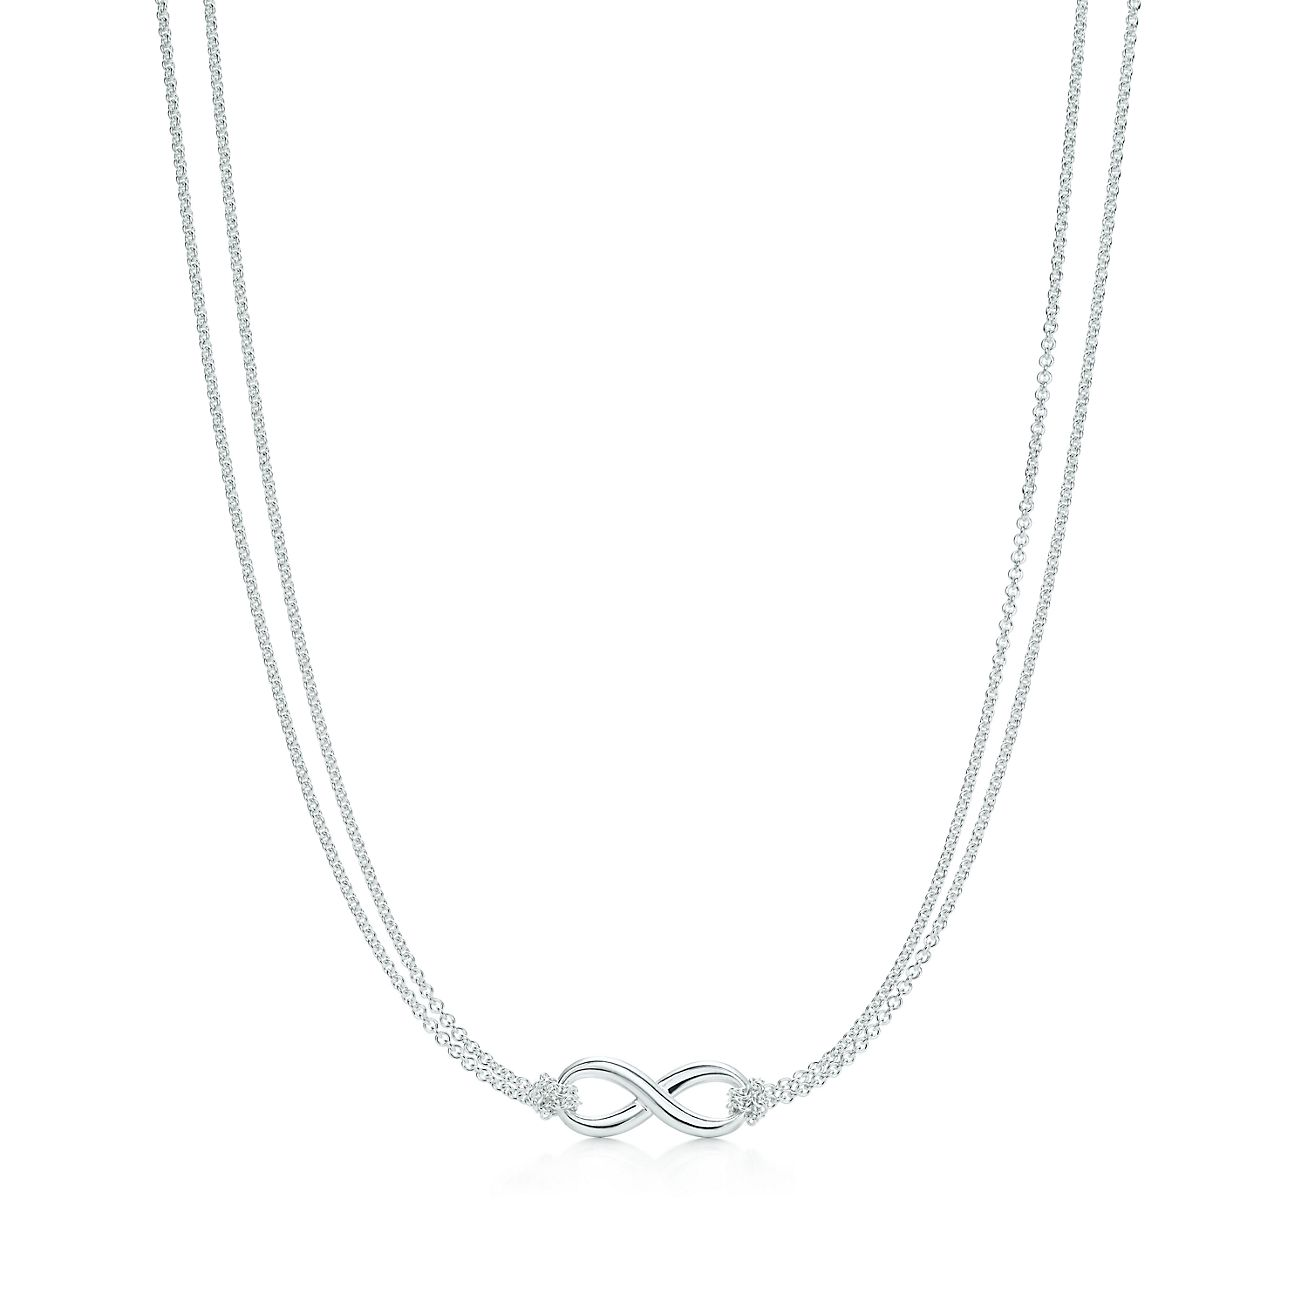 Explore Tiffany Silver Jewelry Tiffany Infinity Pendant 26758432 Tiffany Chain Necklace